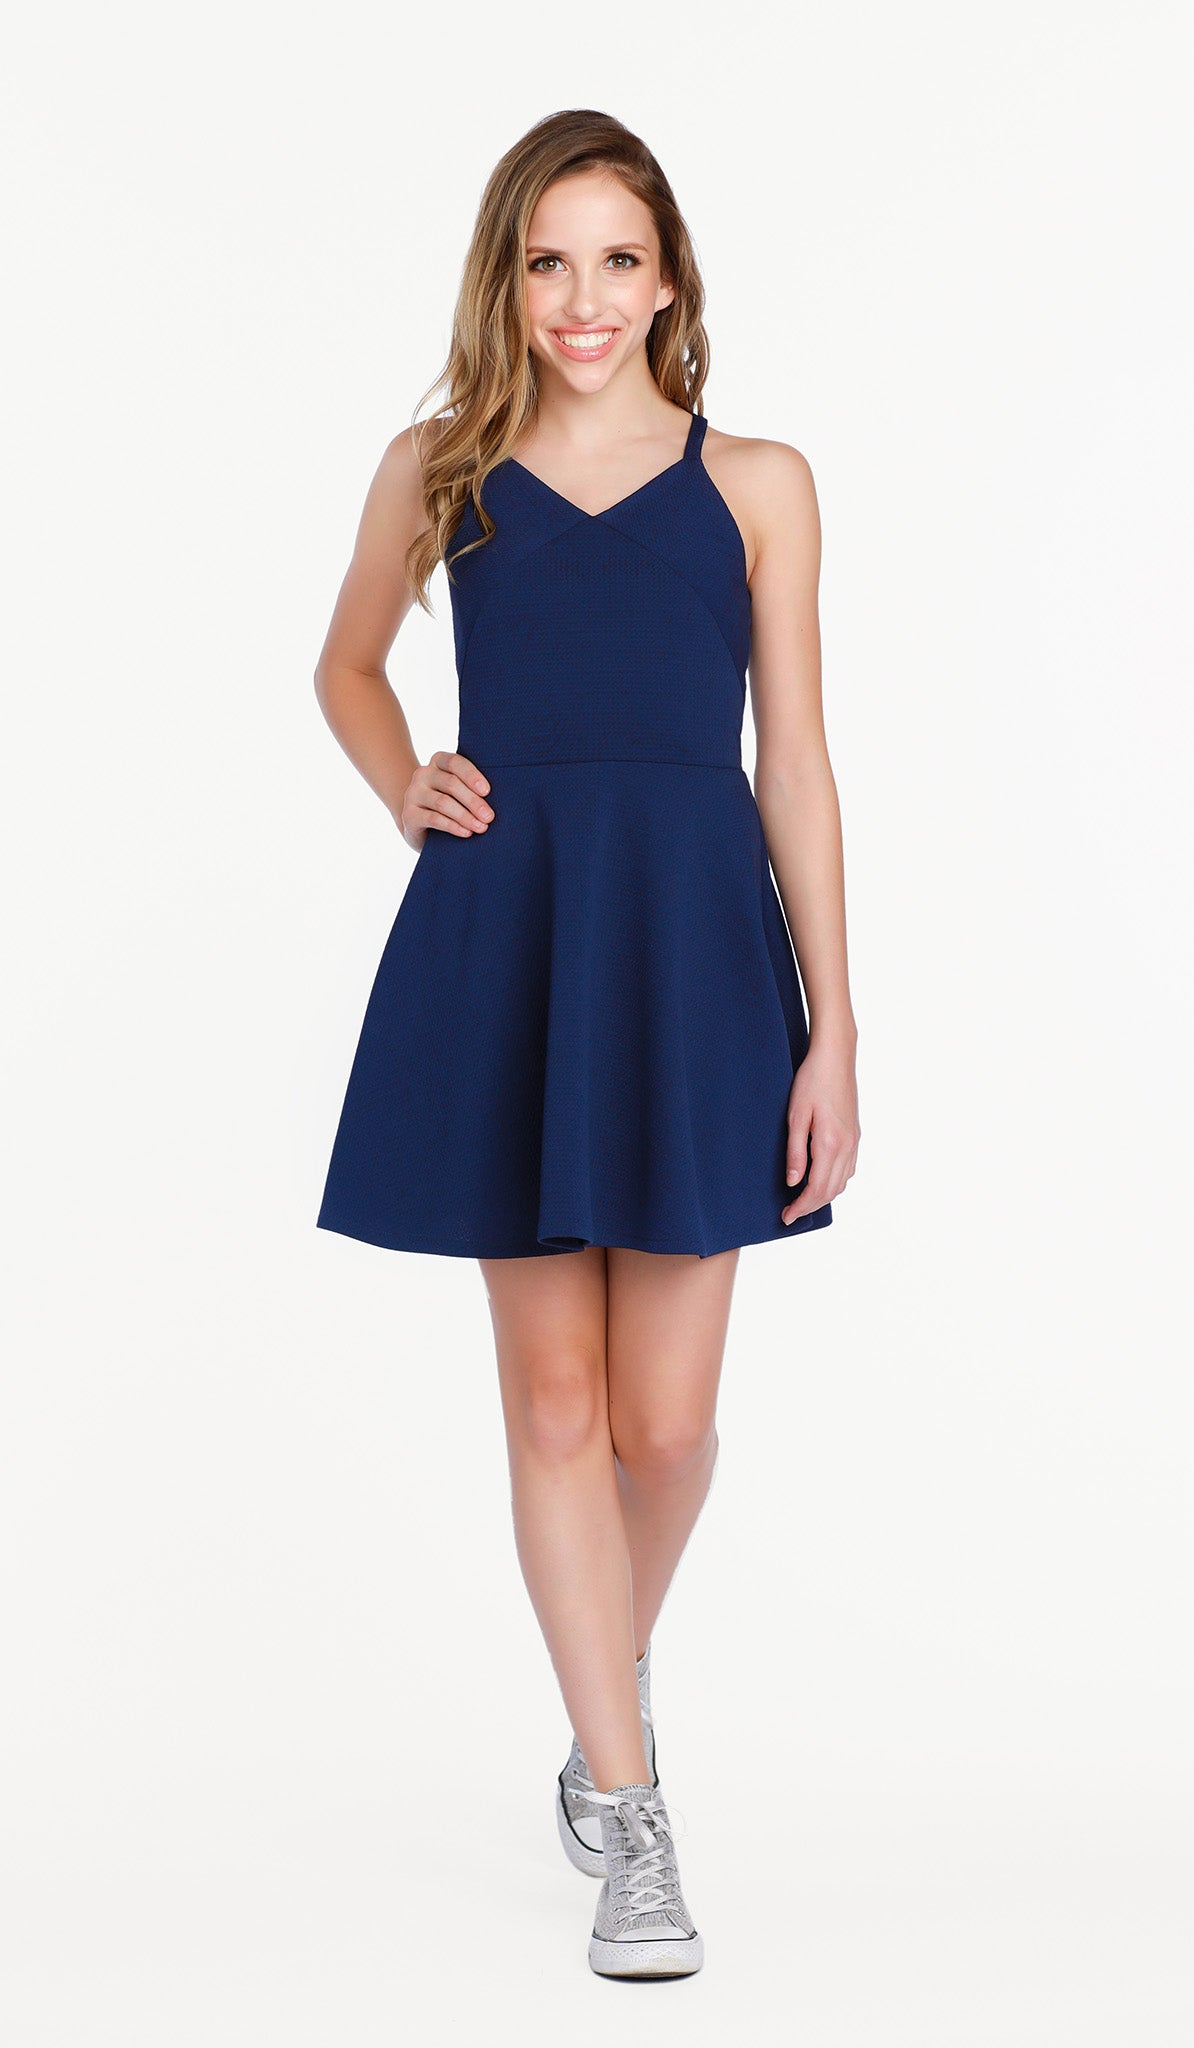 THE GIANNA DRESS - Sallymiller.com - [variant title] - | Event & Party Dresses for Tween Girls & Juniors | Weddings Dresses, Bat Mitzvah Dresses, Sweet Sixteen Dresses, Graduation Dresses, Birthday Party Dresses, Bar Mitzvah Dresses, Cotillion Dresses